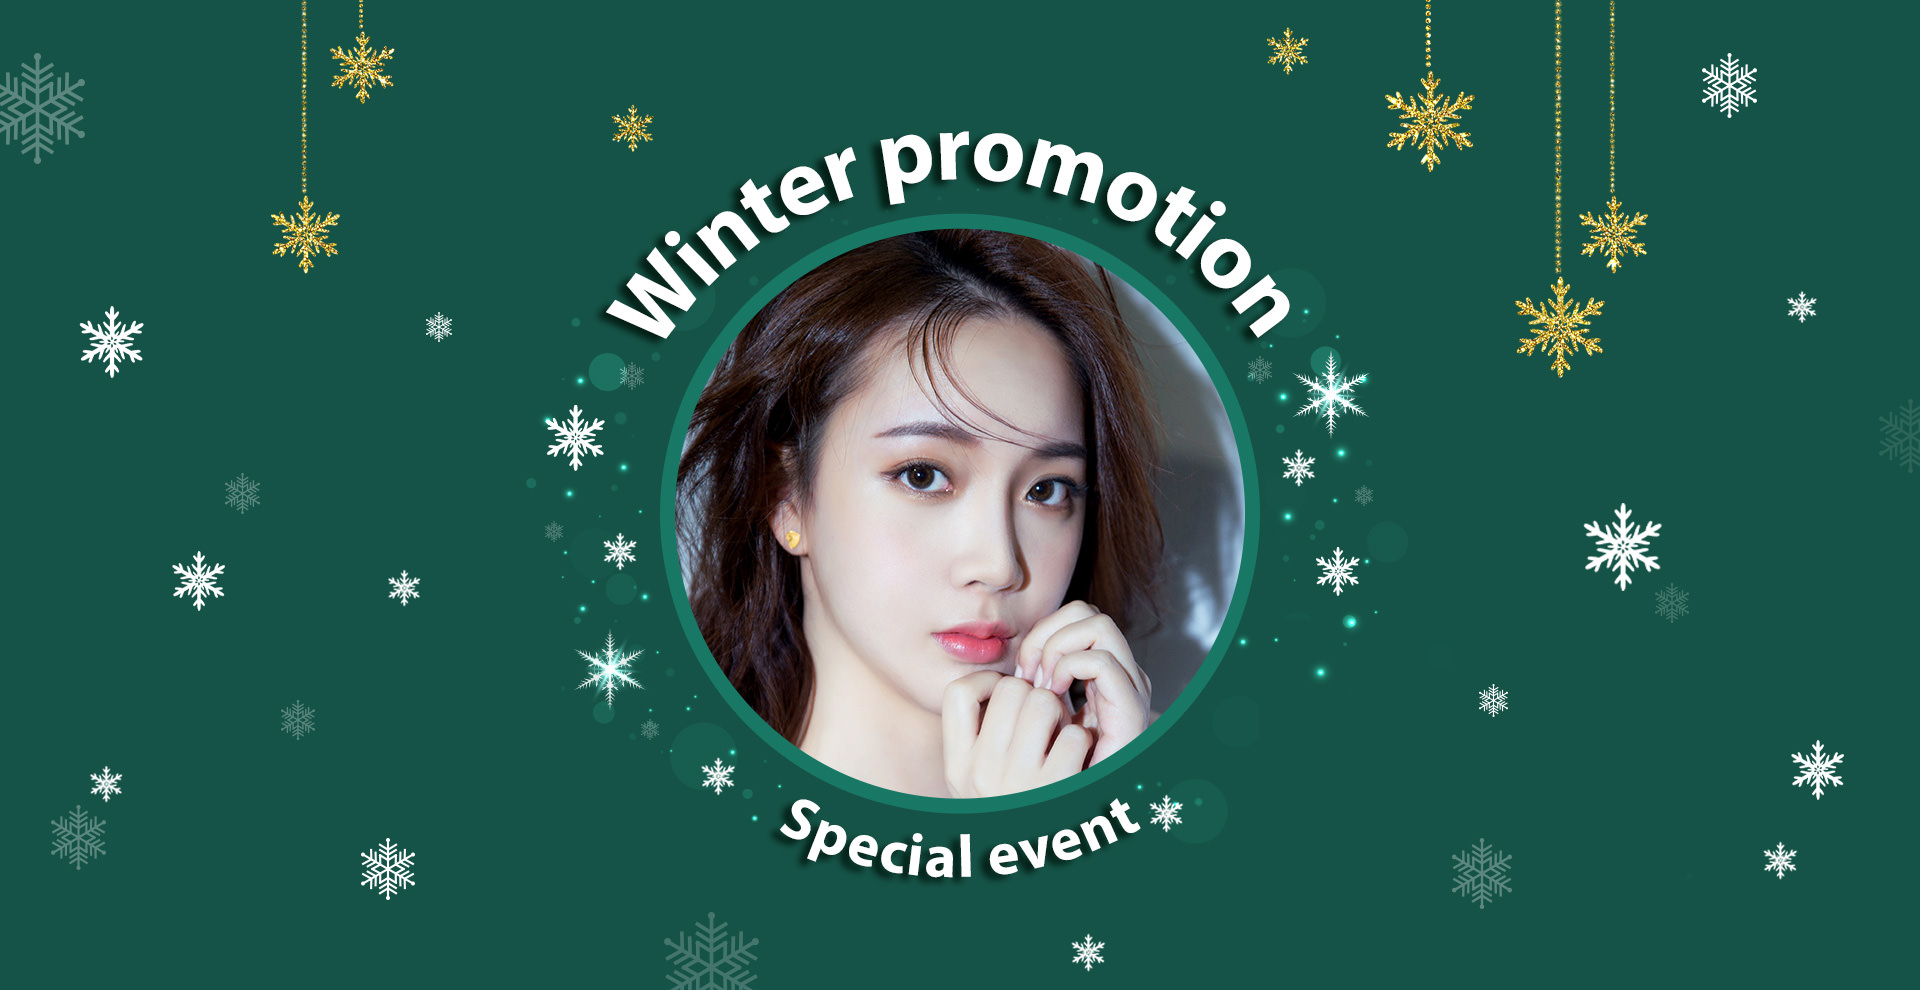 Winter promotion Special event